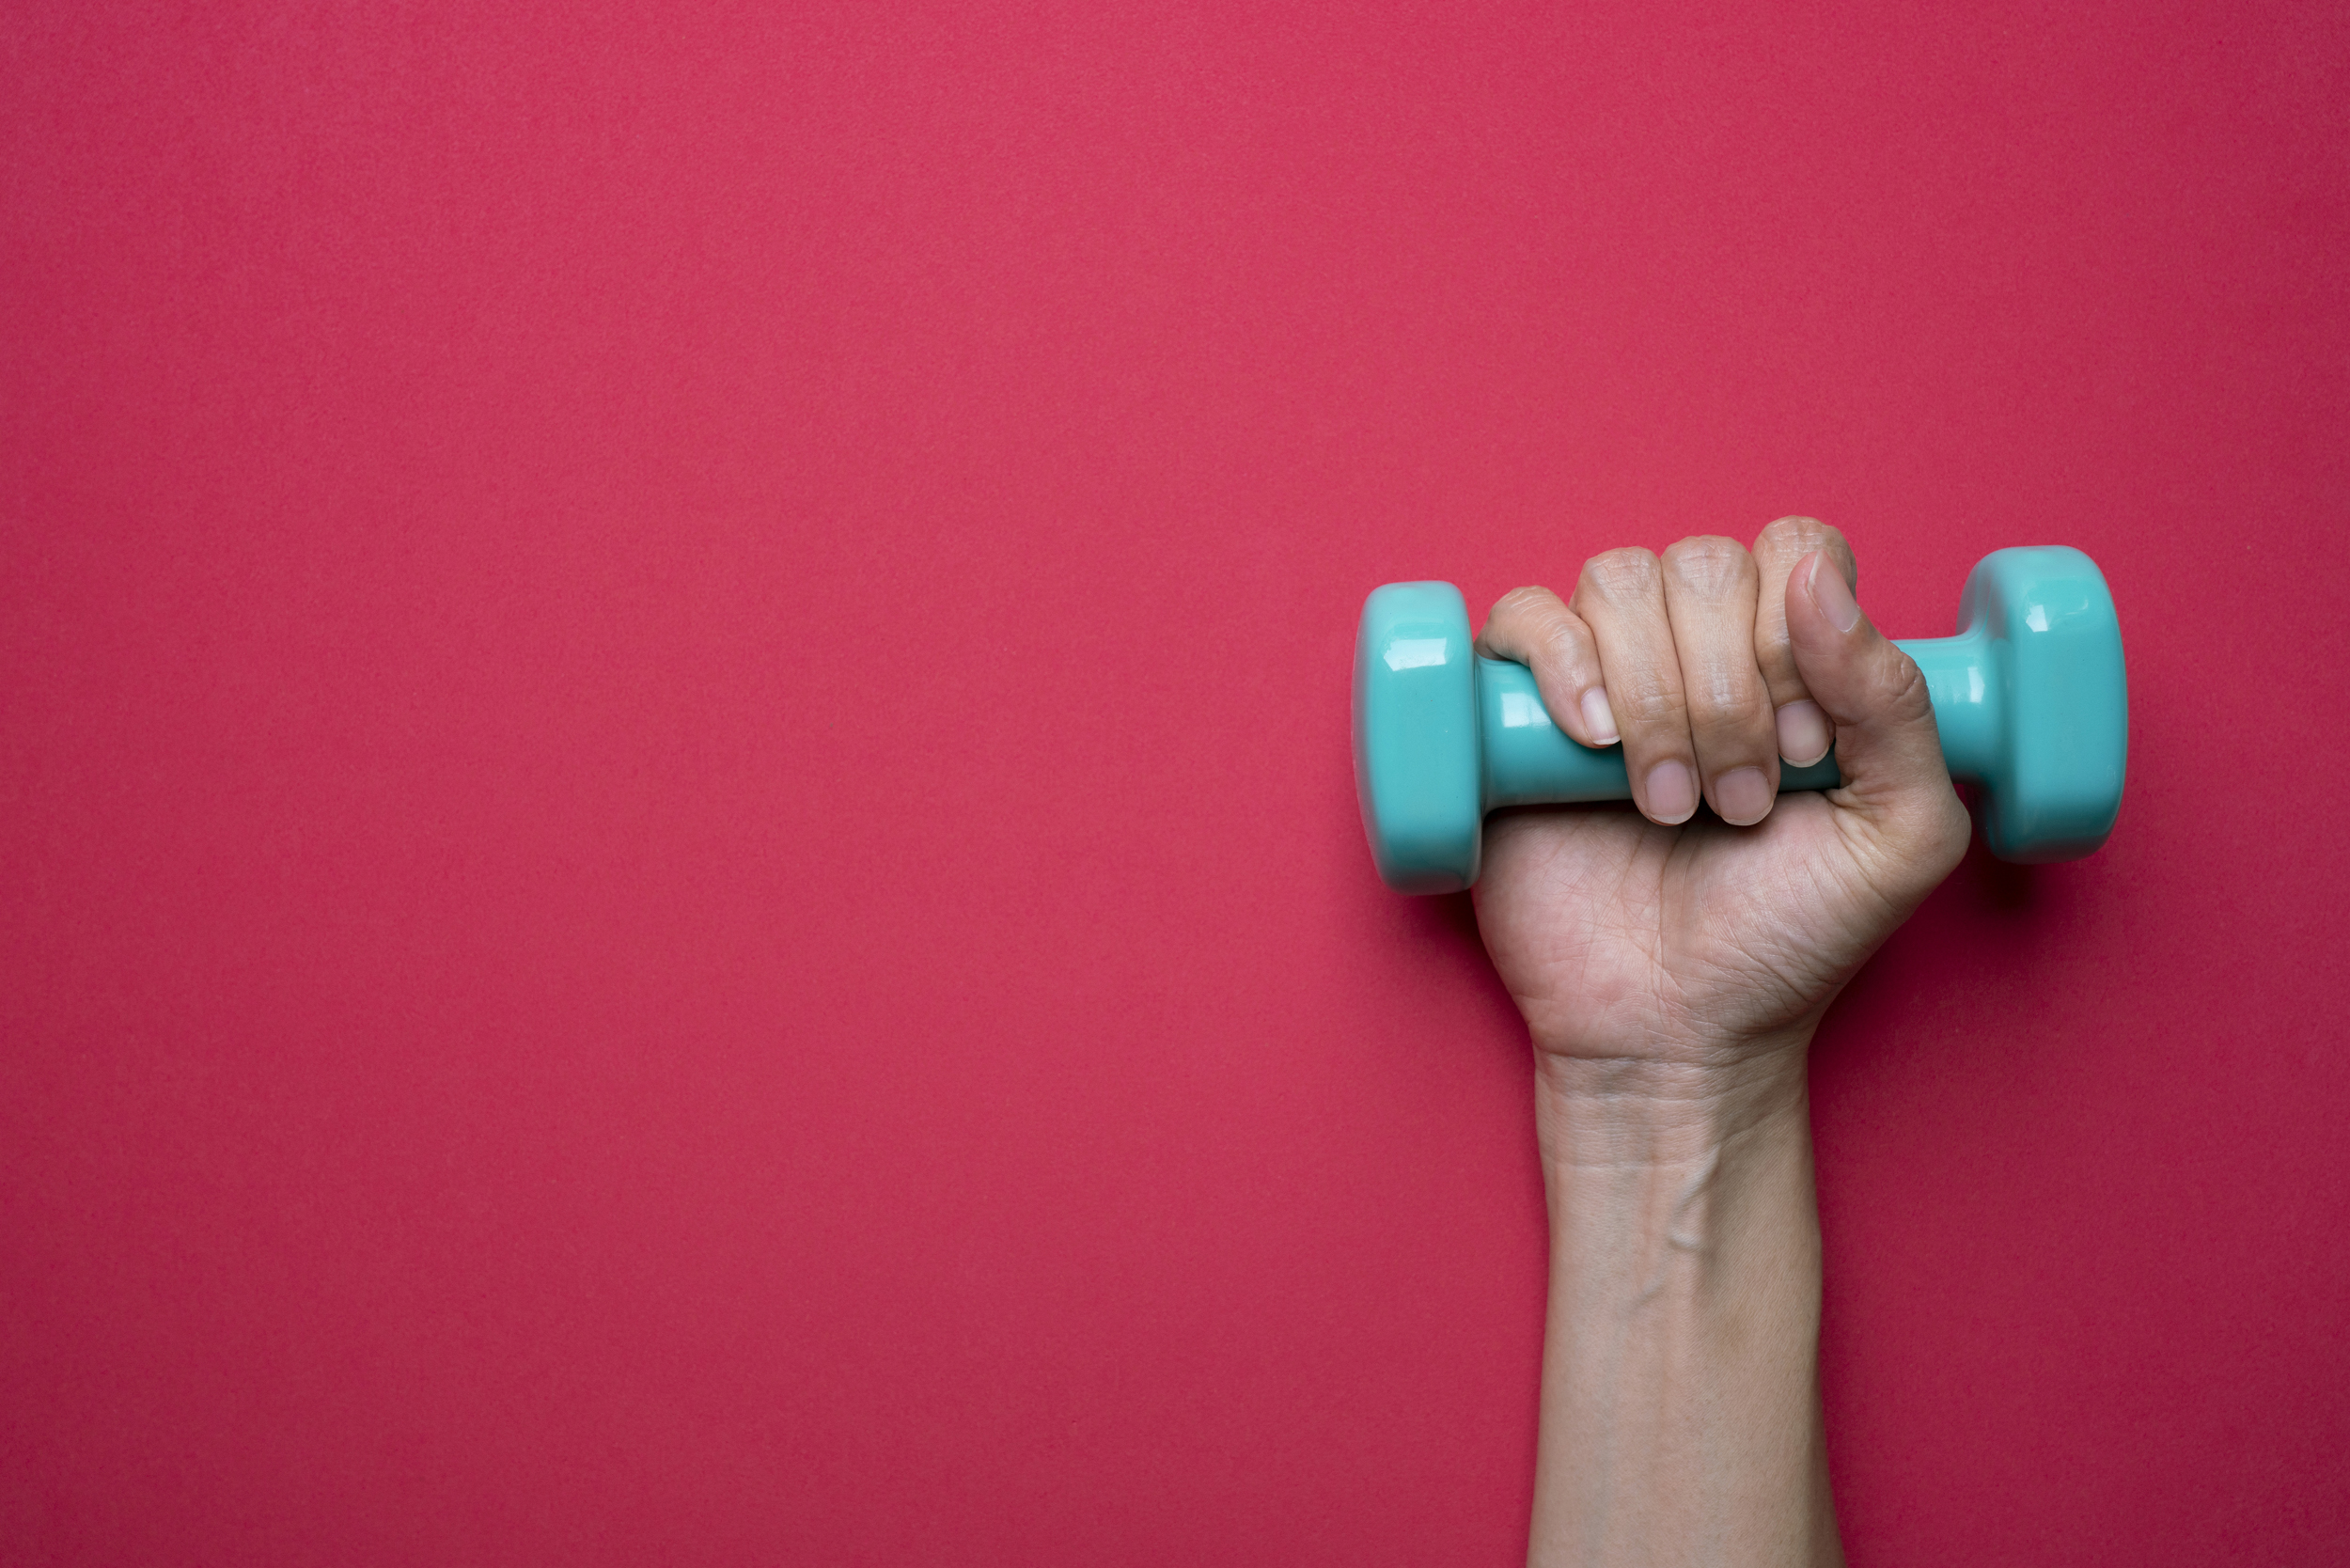 3 common strength training mistakes (and how to fix them)